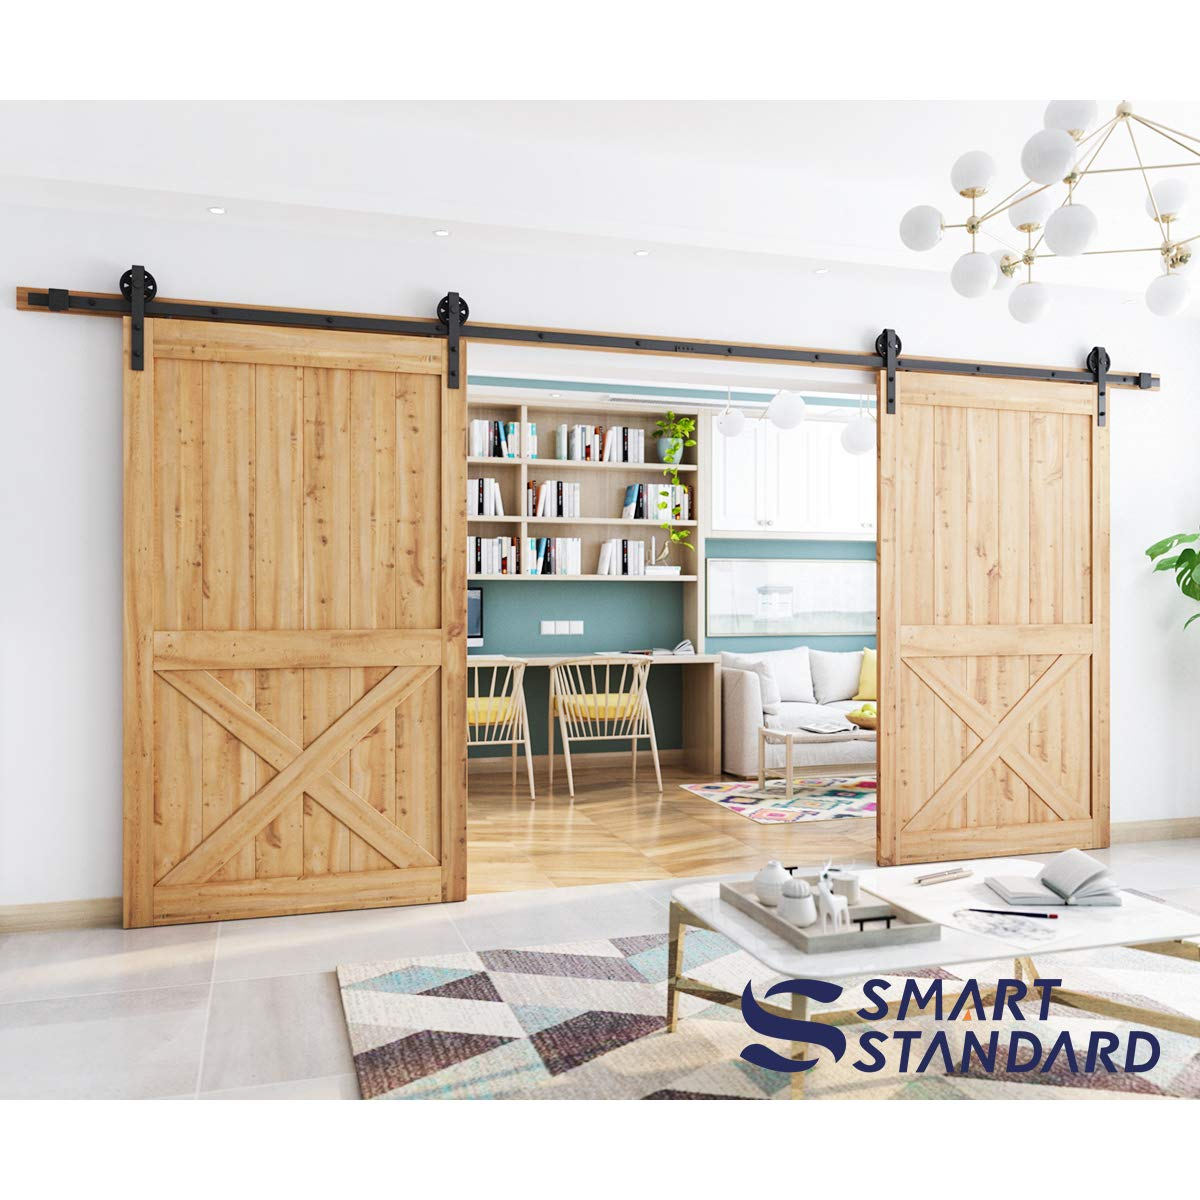 16ft Double Door Sliding Barn Door Hardware Kit - Smoothly and Quietly - Easy to Install - Includes Step-by-Step Installation Instruction -Fit 42''-48'' Wide Door Panel(Big Industrial Wheel Hanger) by SMARTSTANDARD (Image #2)